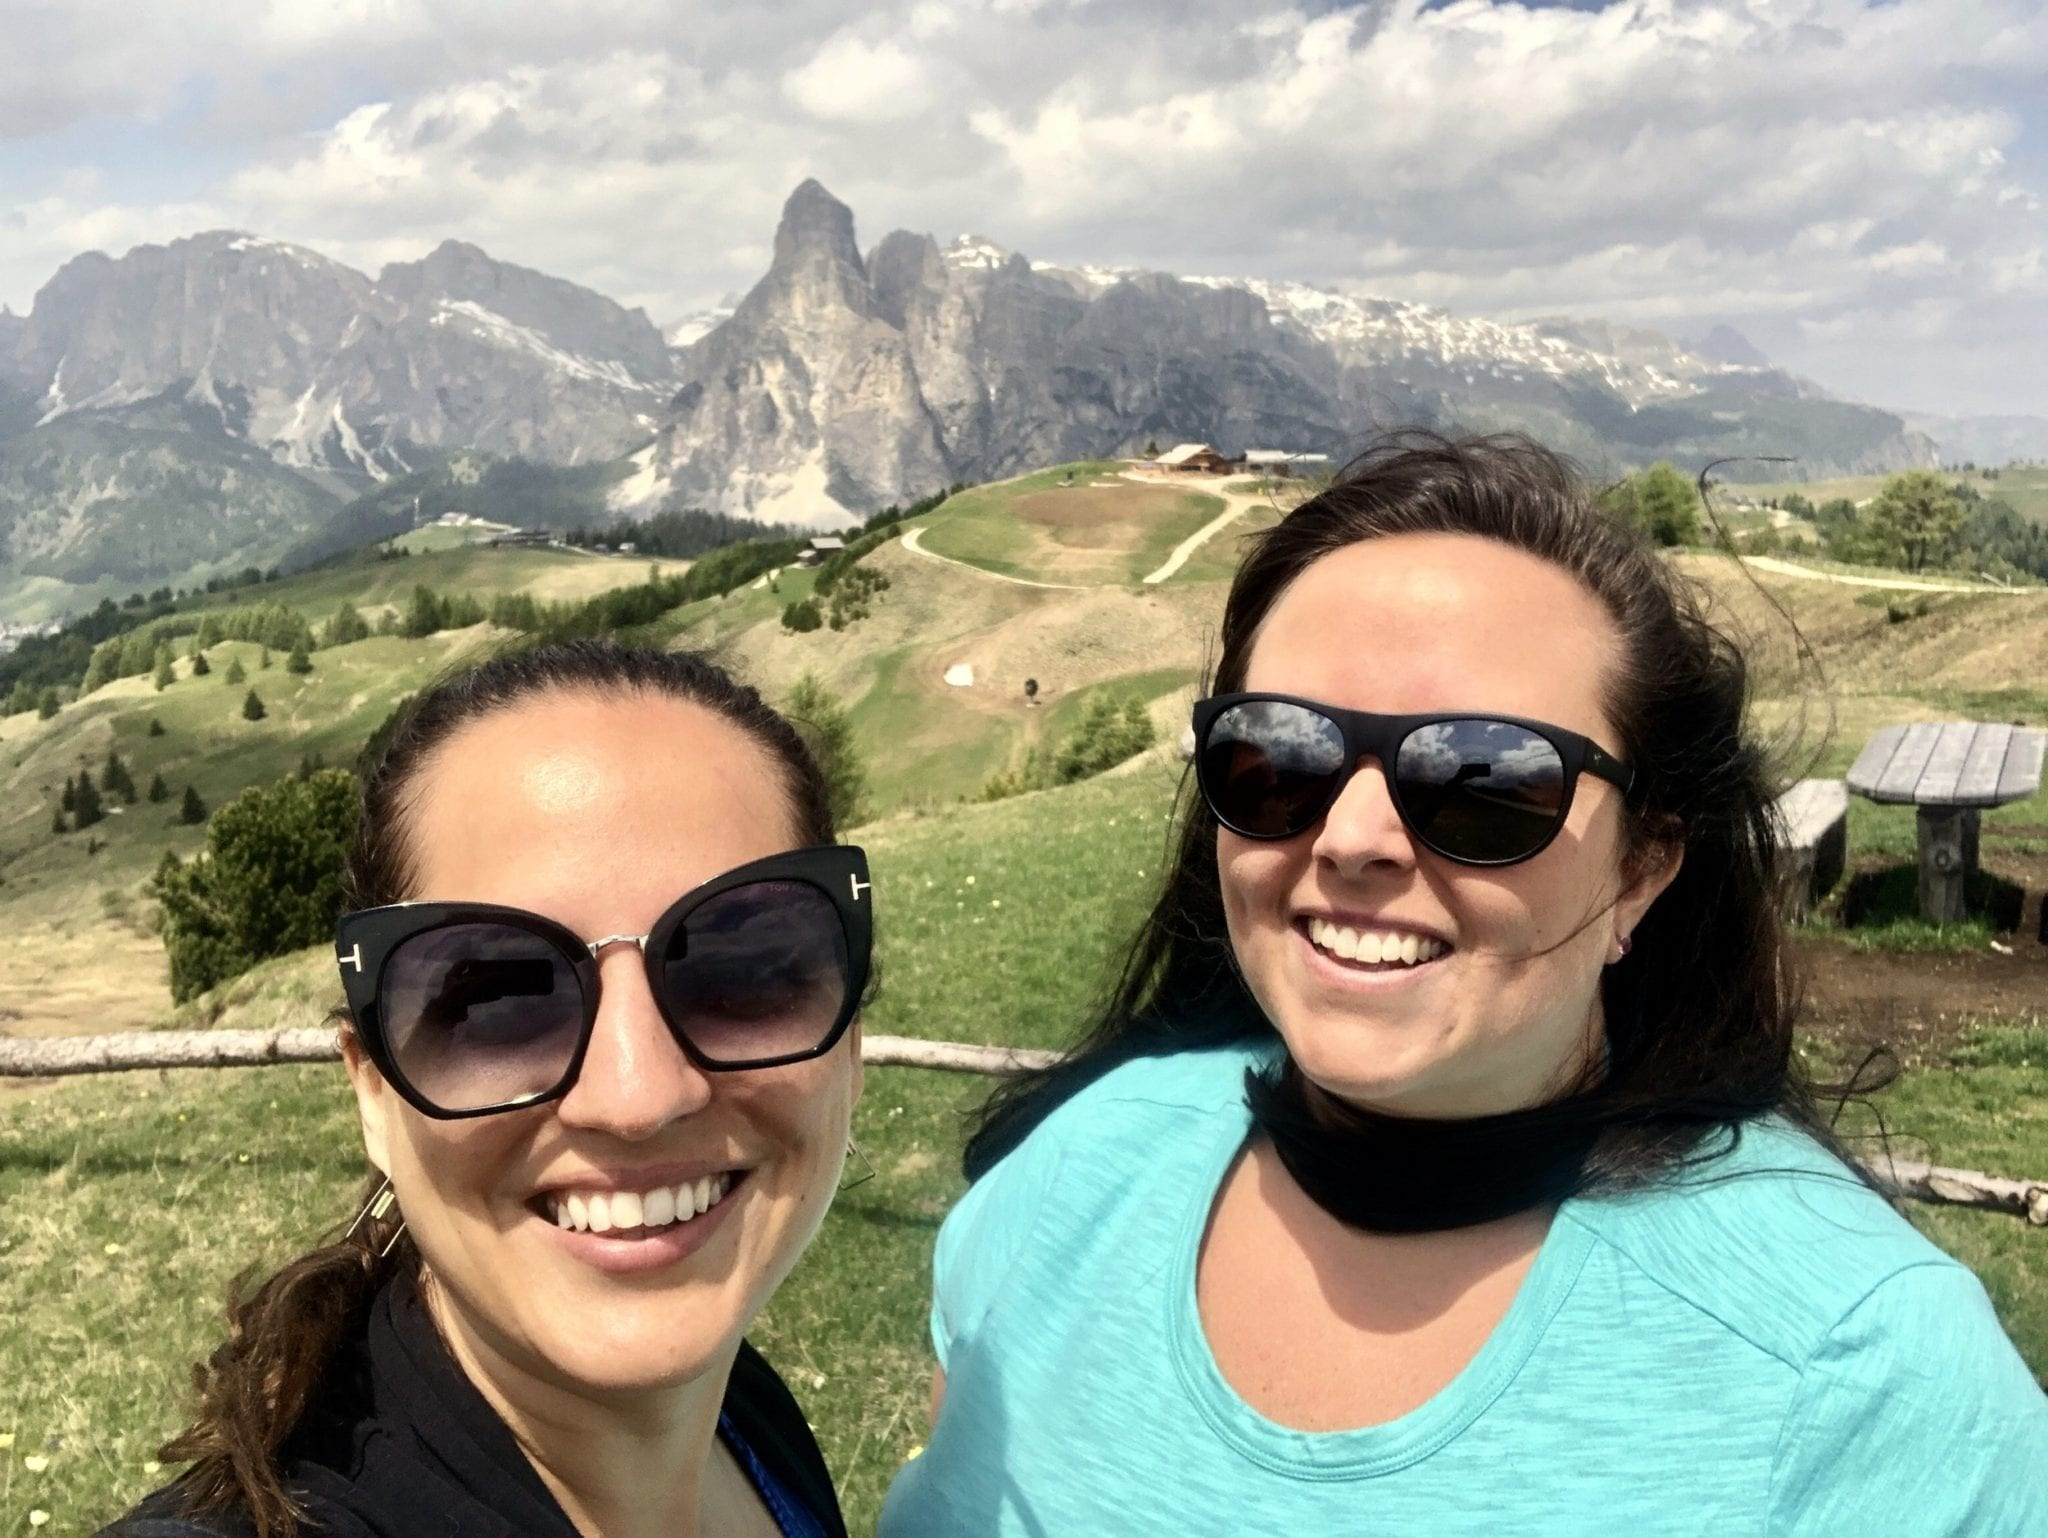 Kate and Cailin take a selfie wearing sunglasses in the Italian Dolomites. Behind them is a row of jagged mountains in the distance. There is a dramatic cloudy sky.